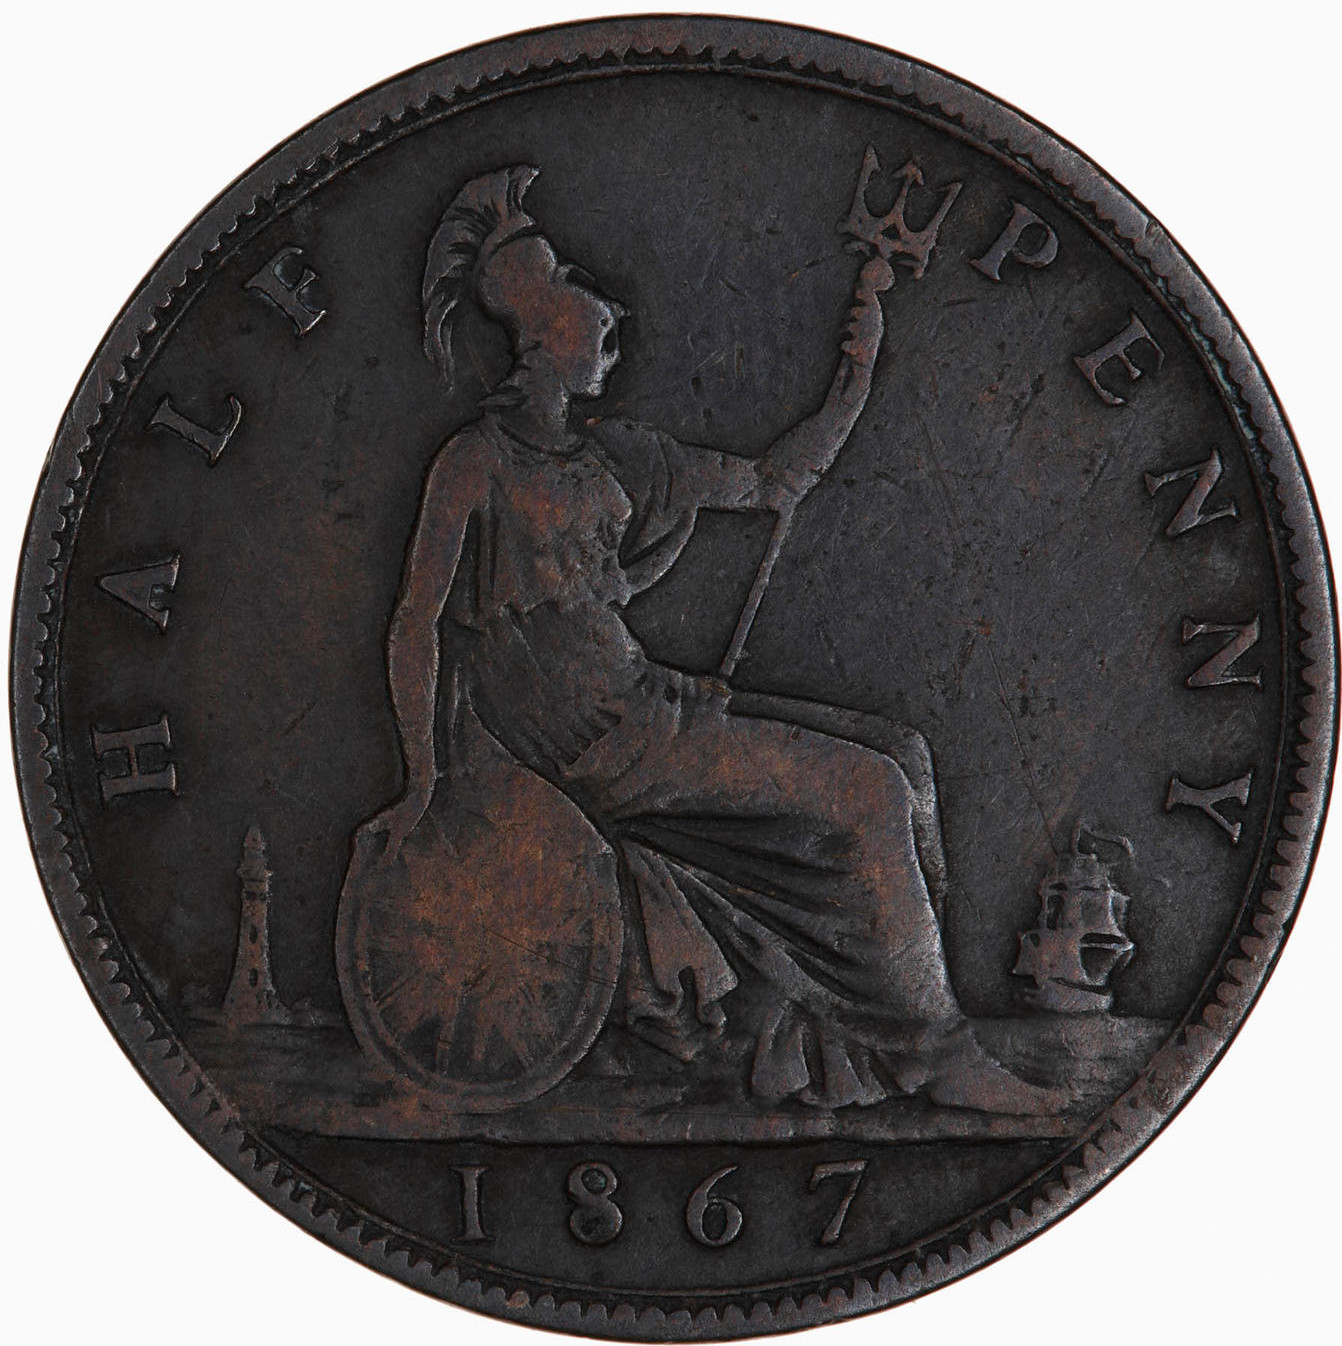 Halfpenny 1867: Photo Coin - Halfpenny, Queen Victoria, Great Britain, 1867